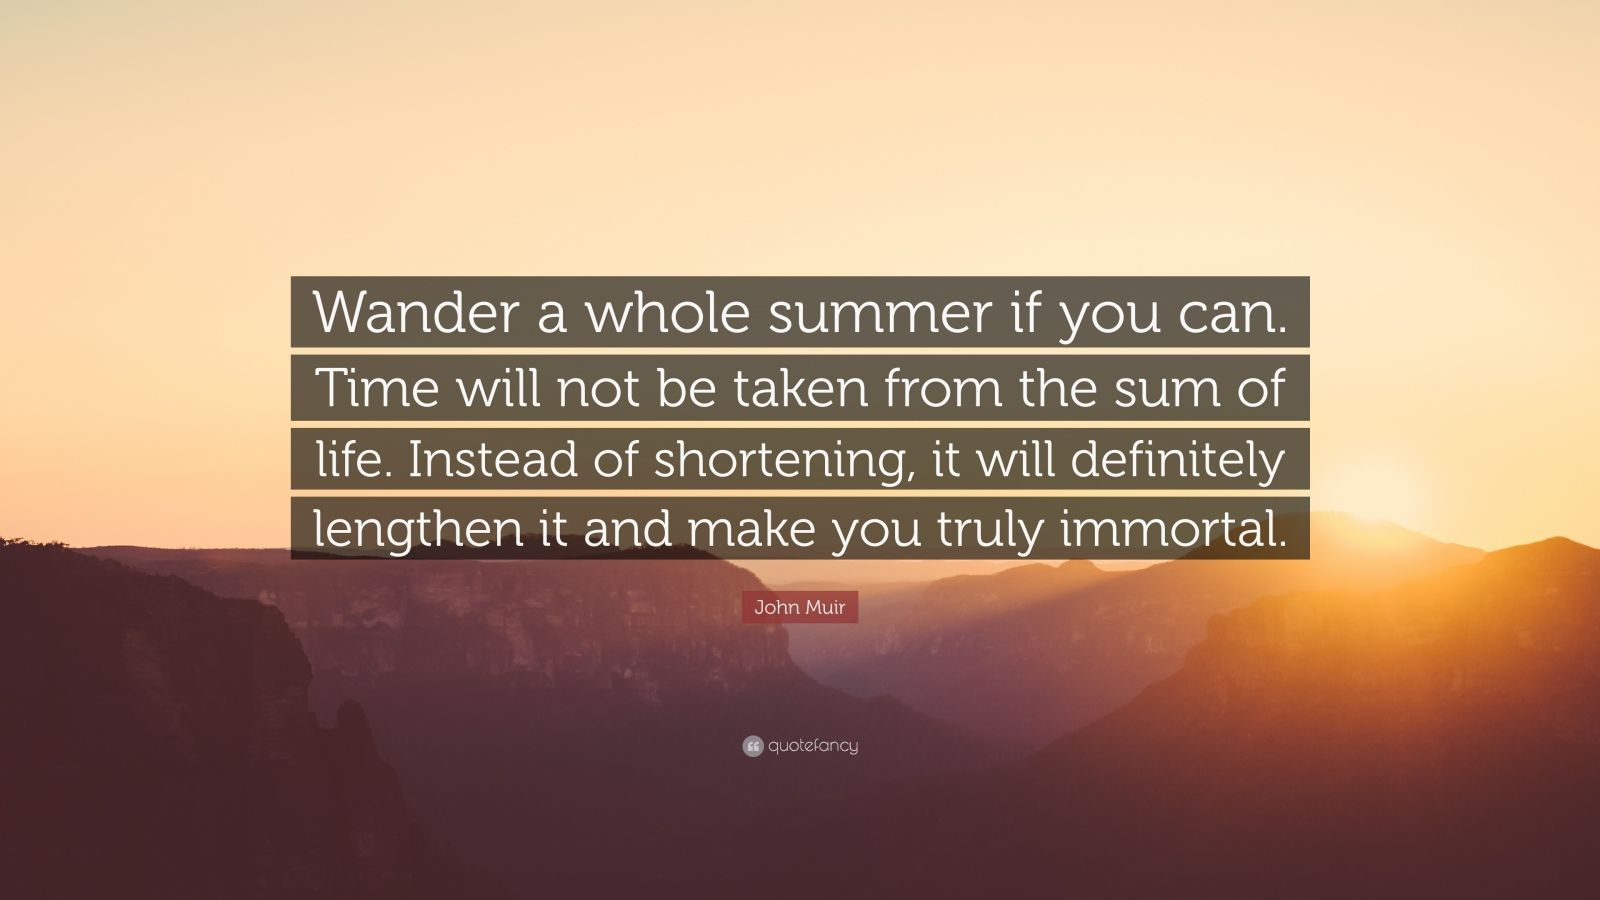 """John Muir Quote: """"Wander a whole summer if you can. Time will not be taken from the sum of life. Instead of shortening, it will definitely lengthen it and make you truly immortal."""""""